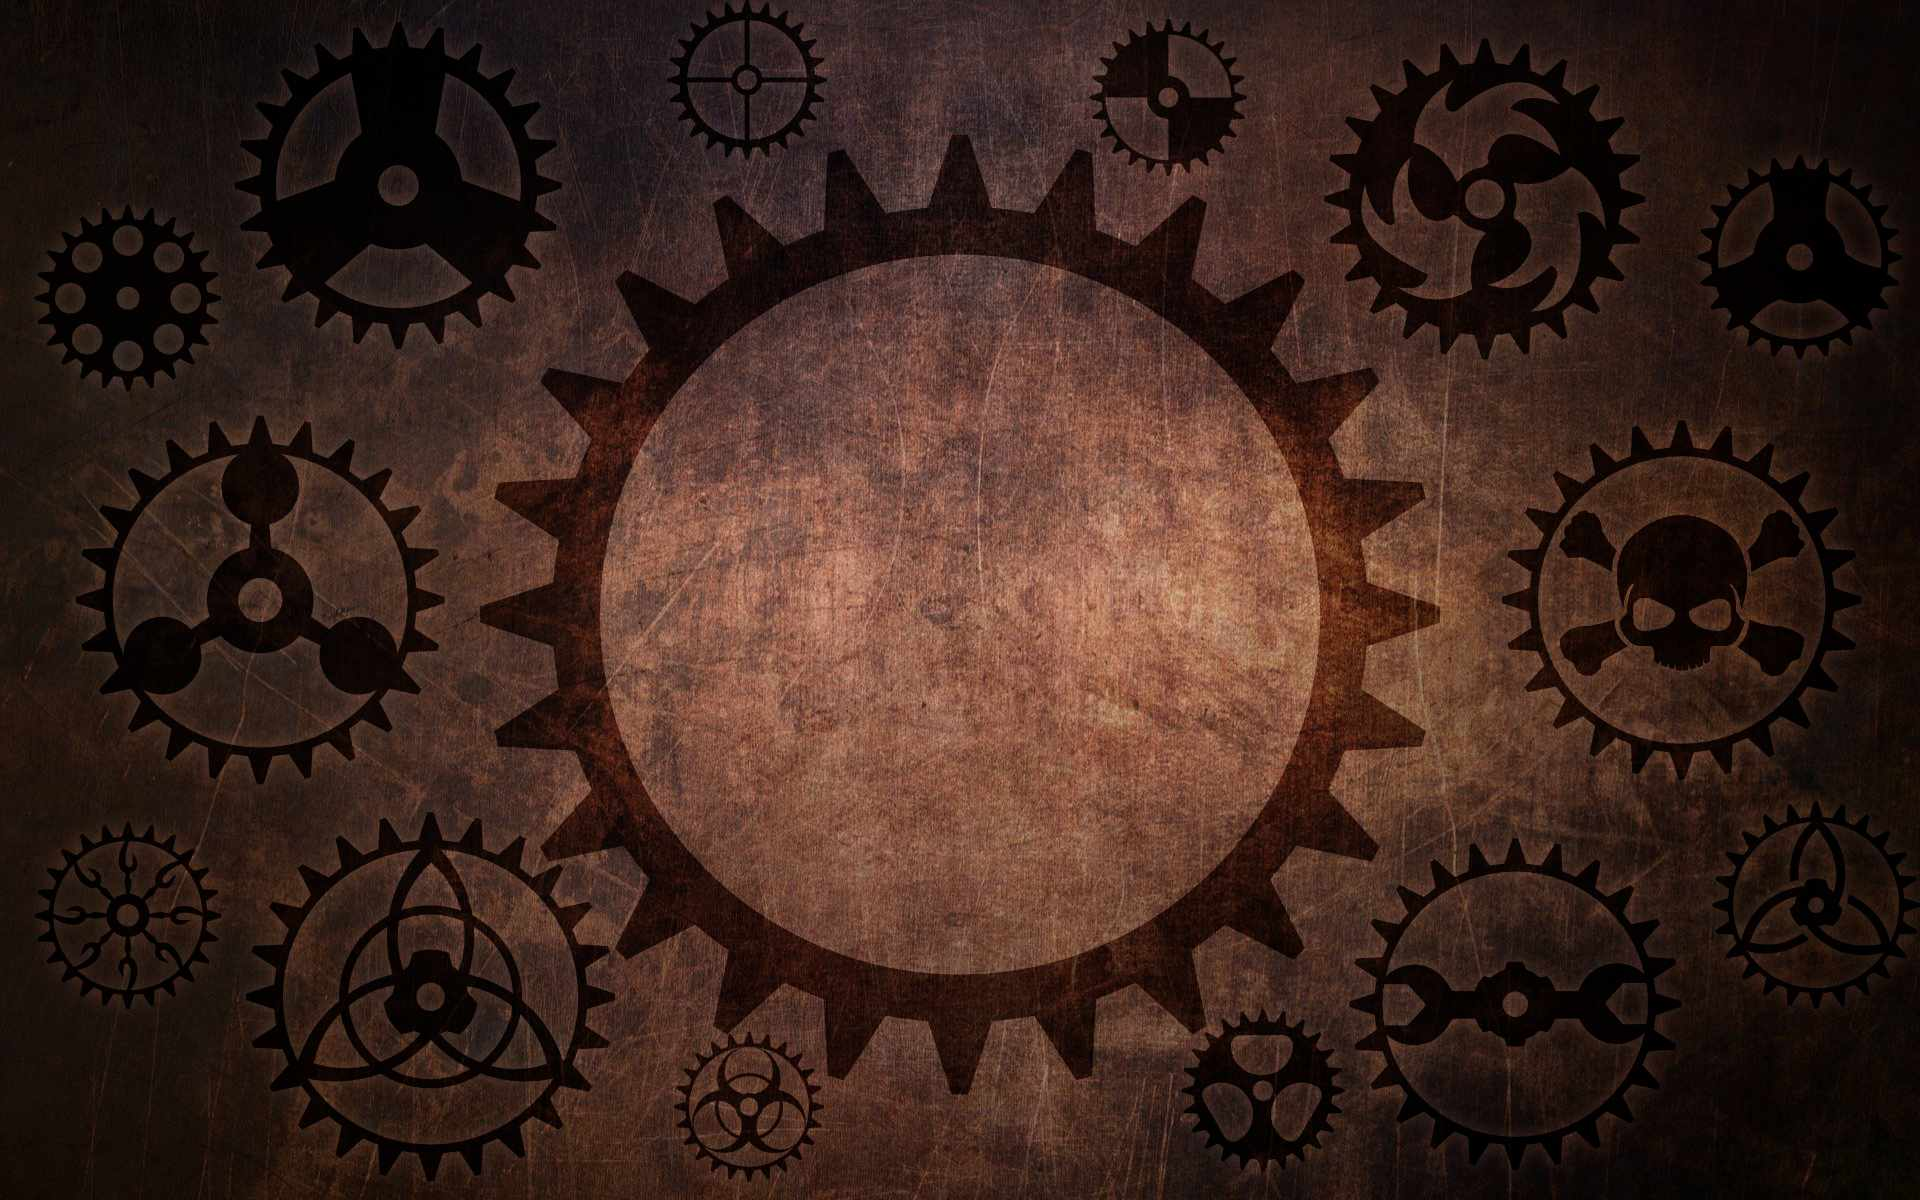 30 gears for steampunk games